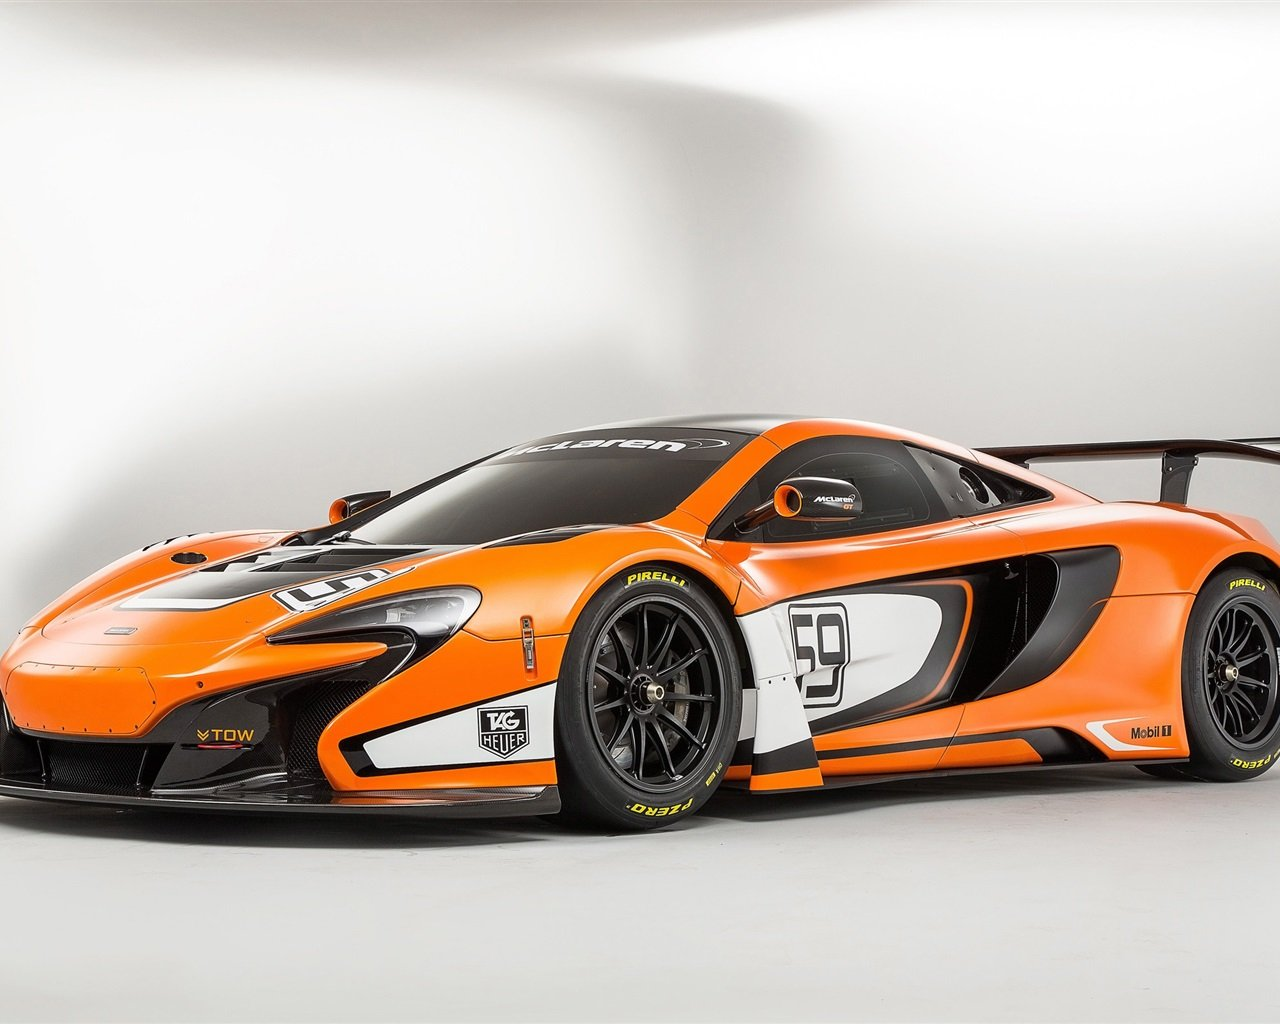 650S GT3 orange supercar Wallpaper 1280x1024 resolution wallpaper 1280x1024